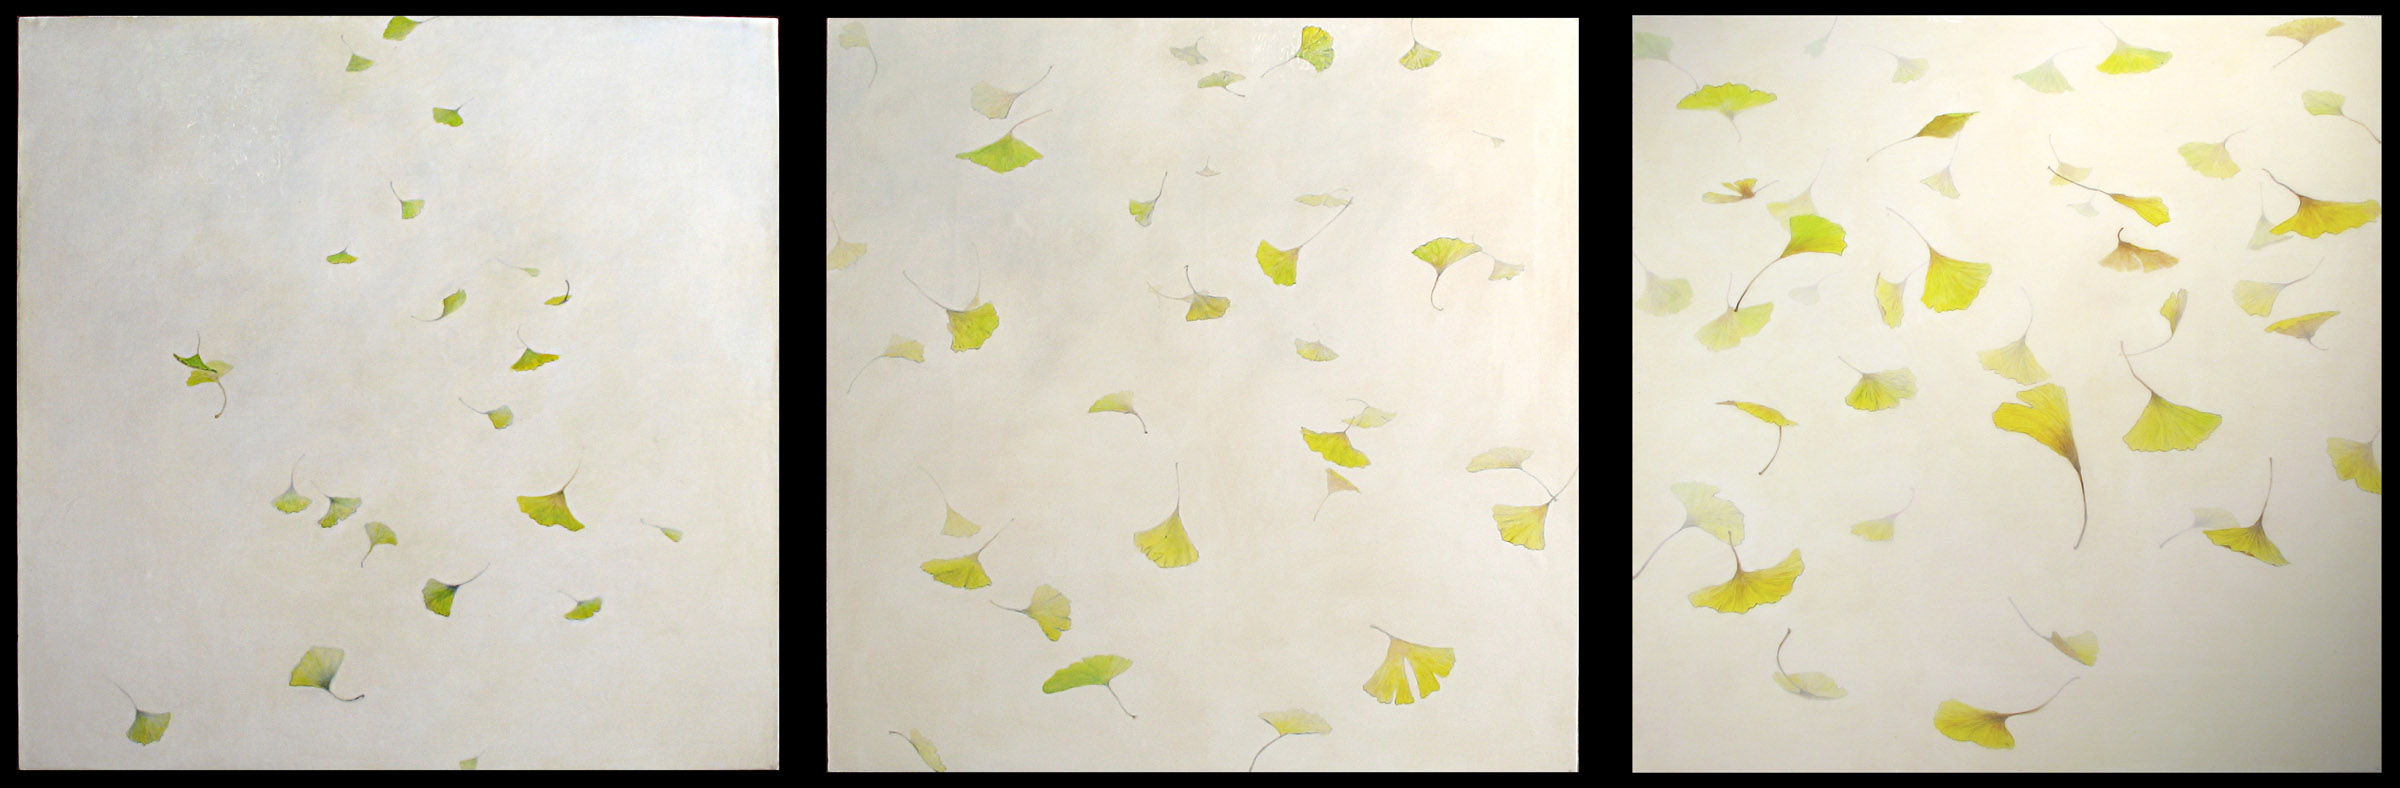 100 Gingkos  , 2006  Graphite, acrylic glazes on prepared cradled panels  3 panels, 36 x 36 inches each